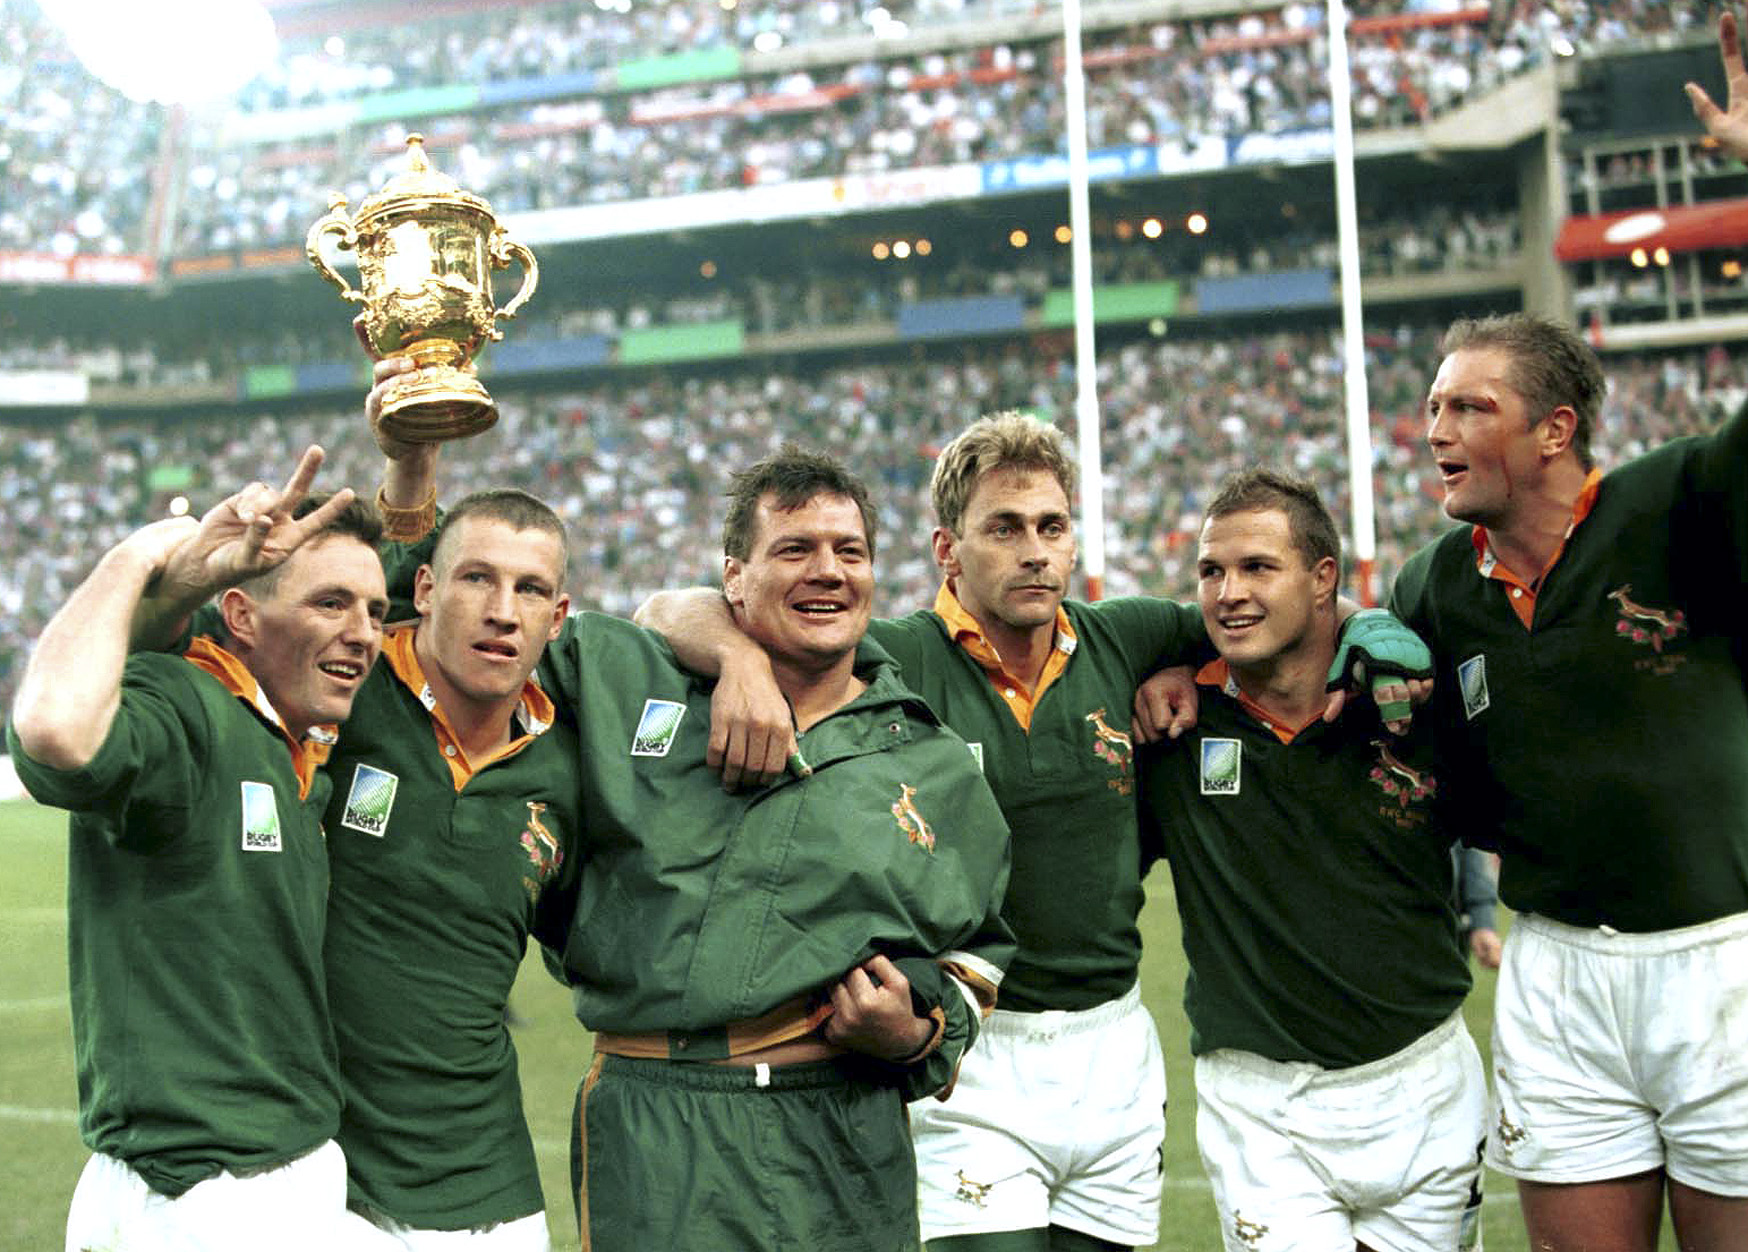 The 1995 Rugby World Cup, won by the Springboks. Celebrating are Joel Stransky, James Small, Balie Swart, Andre Joubert, Chris Rossouw and Hannes Strydom.